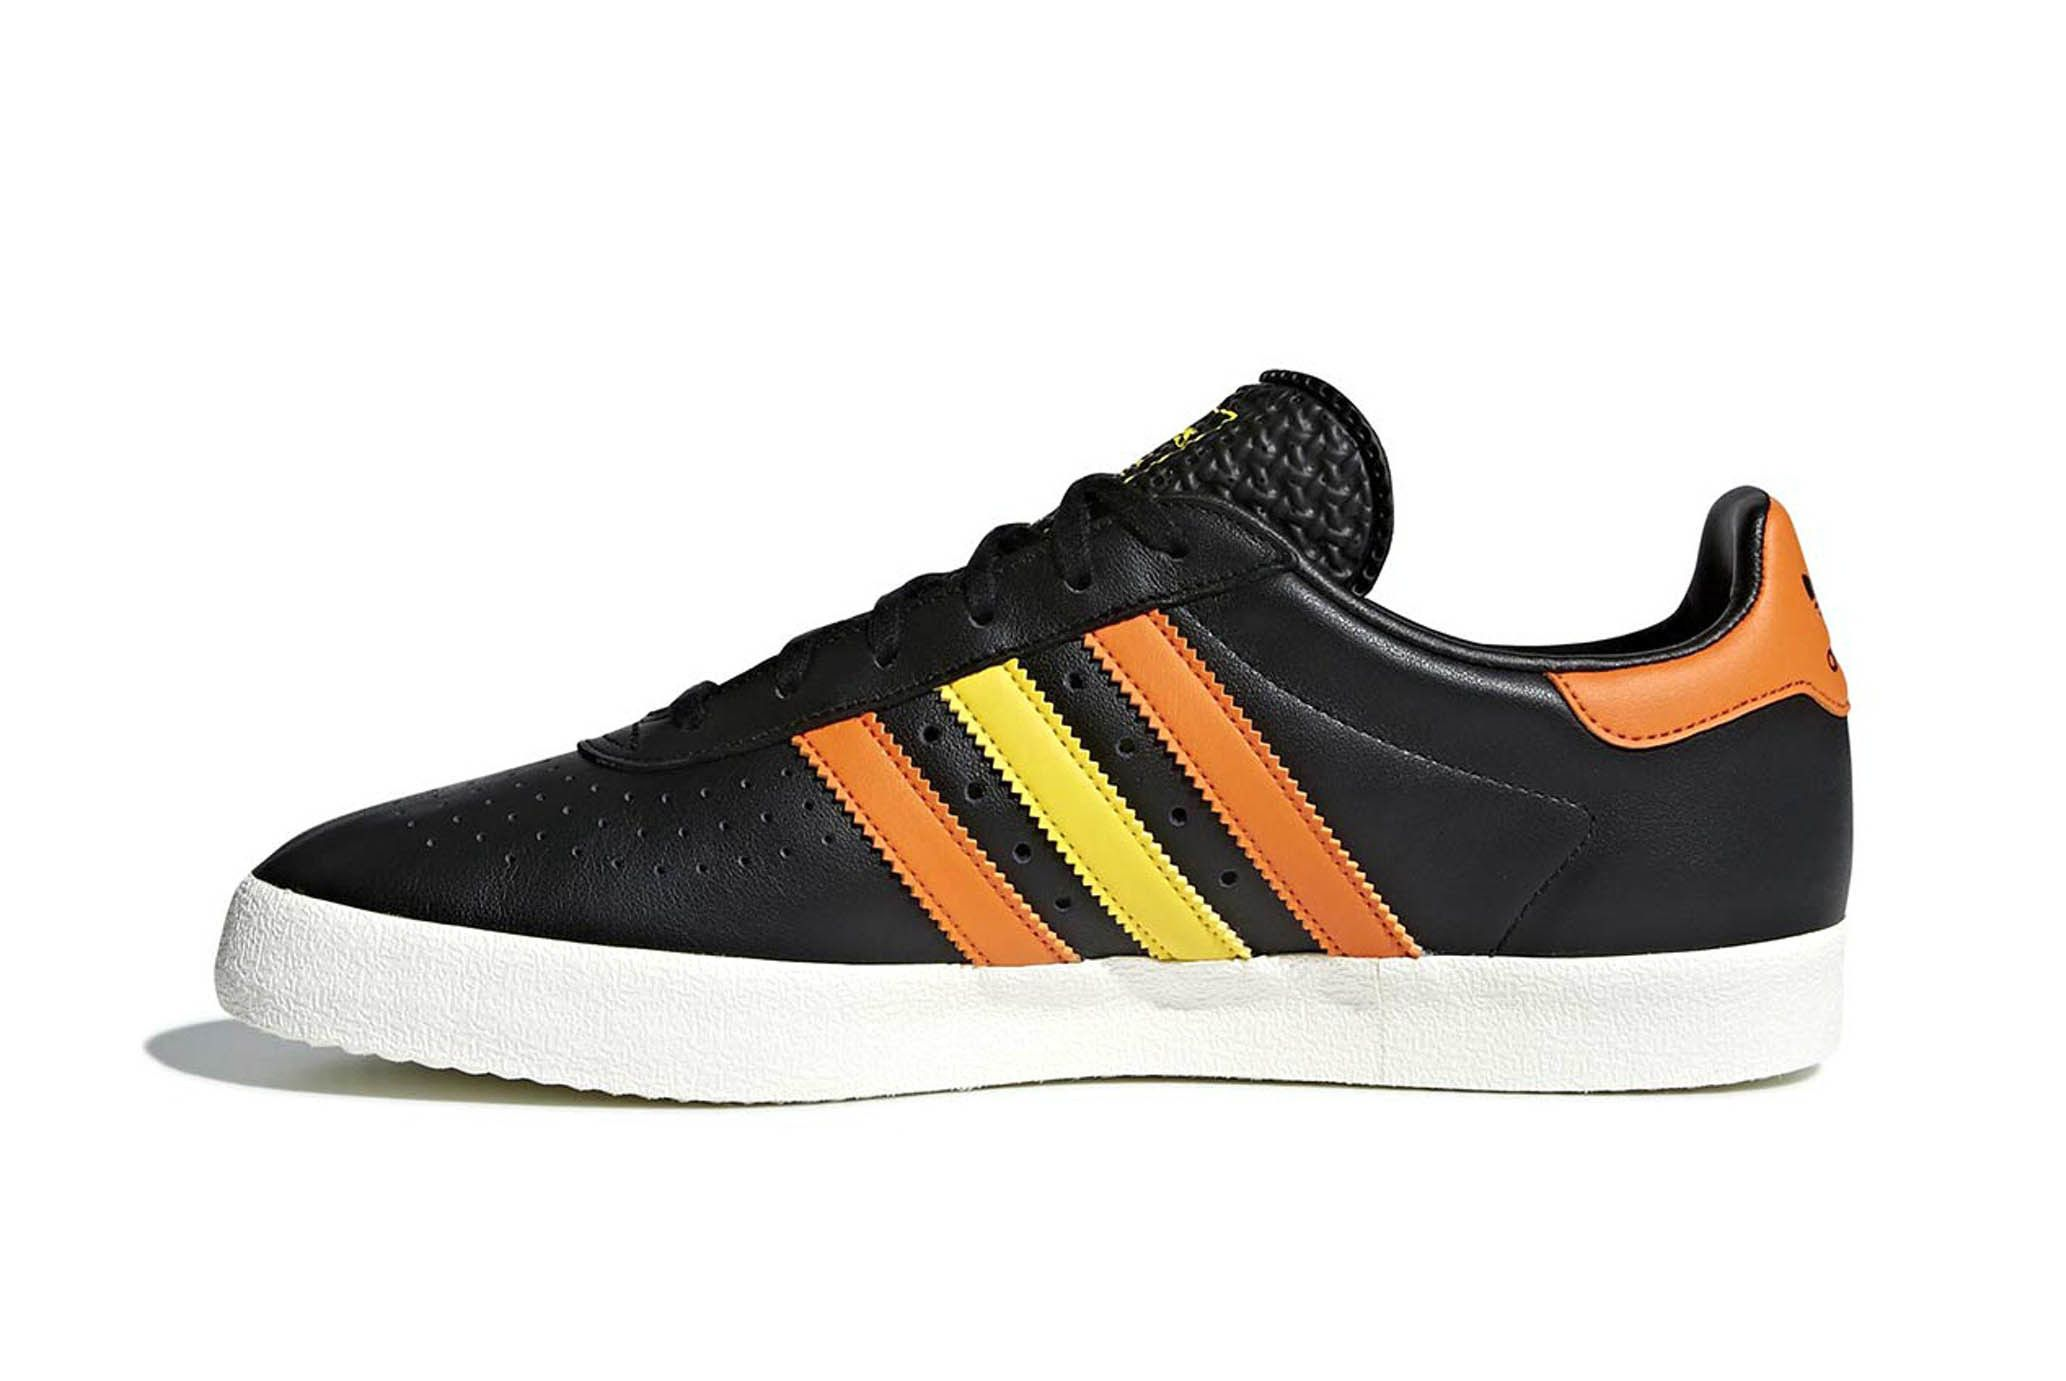 Adidas 350 Moscow Black White Leather Release 6 Sneaker Freaker